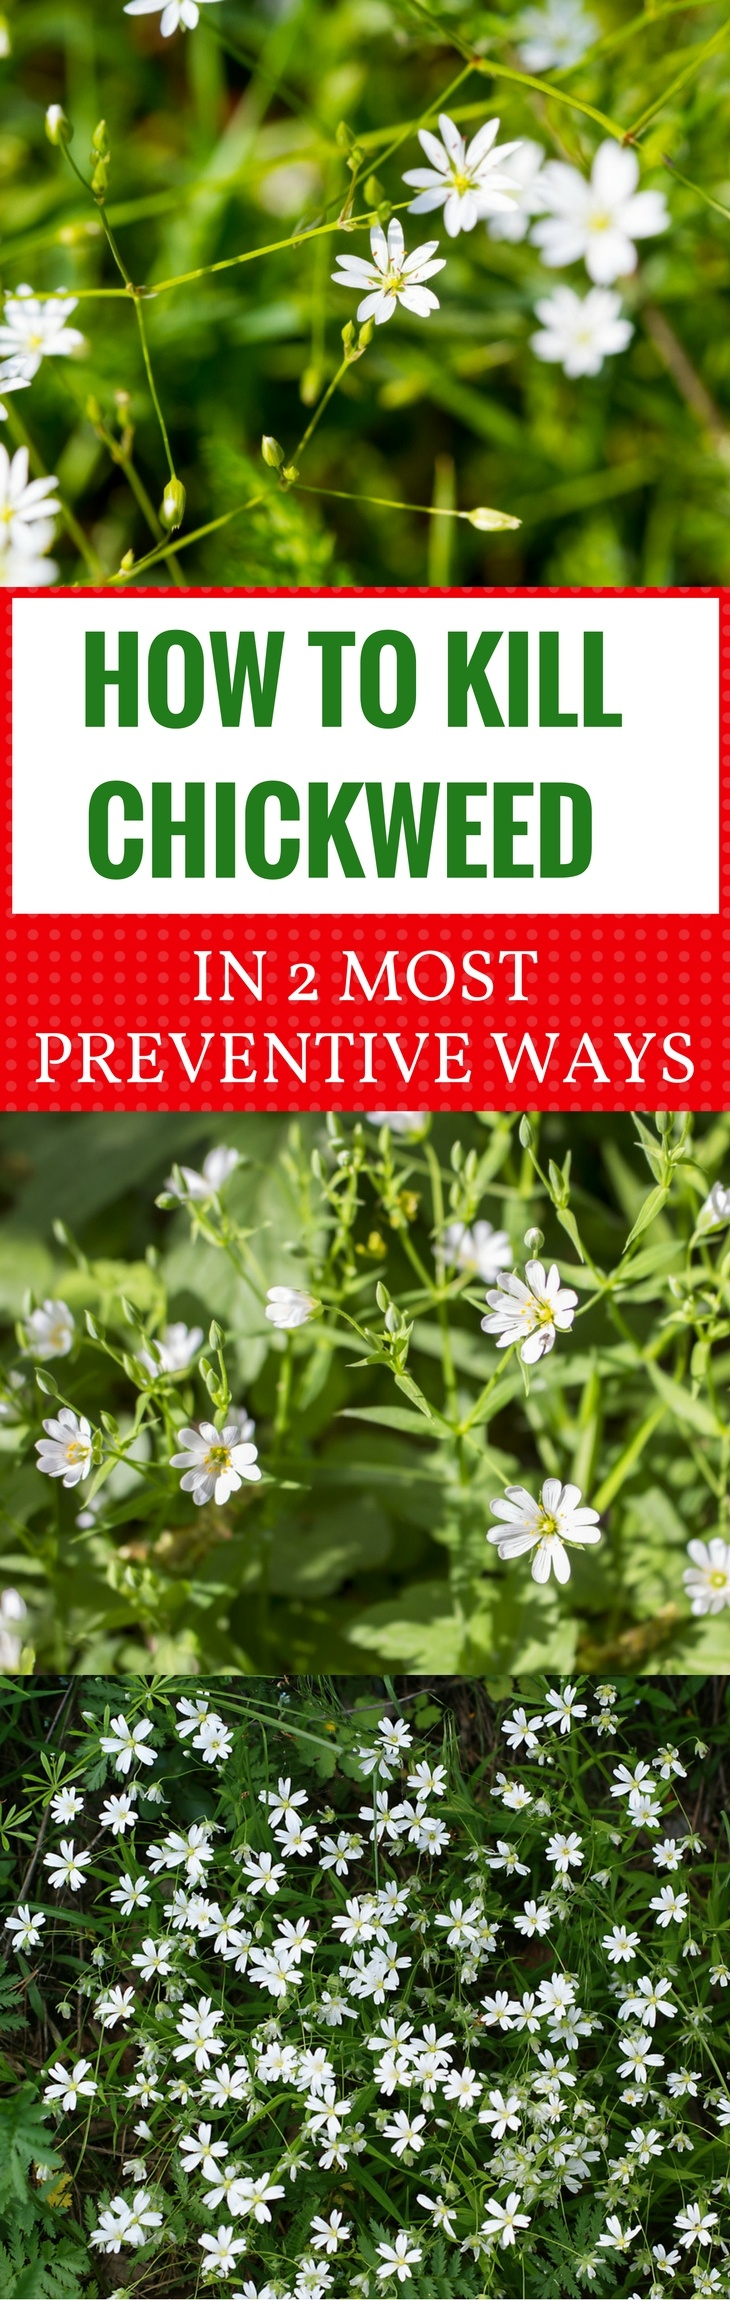 How to Kill Chickweed in 2 Most Preventive Ways -pin it